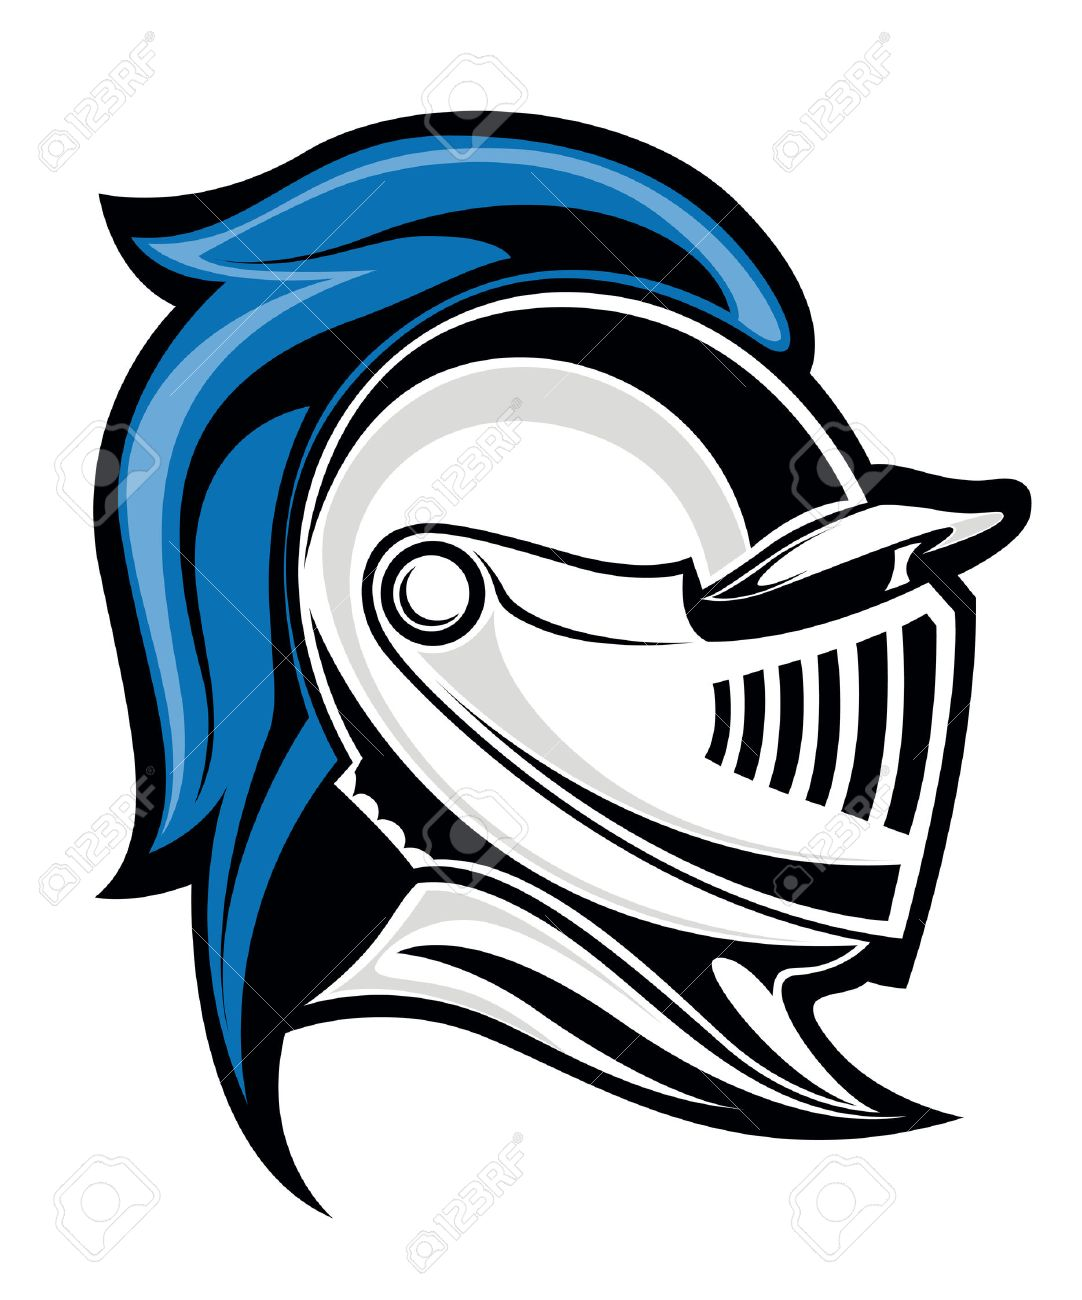 medieval knight head in helmet vector illustration royalty free rh 123rf com blue knight head logo Black Knight Head Logo